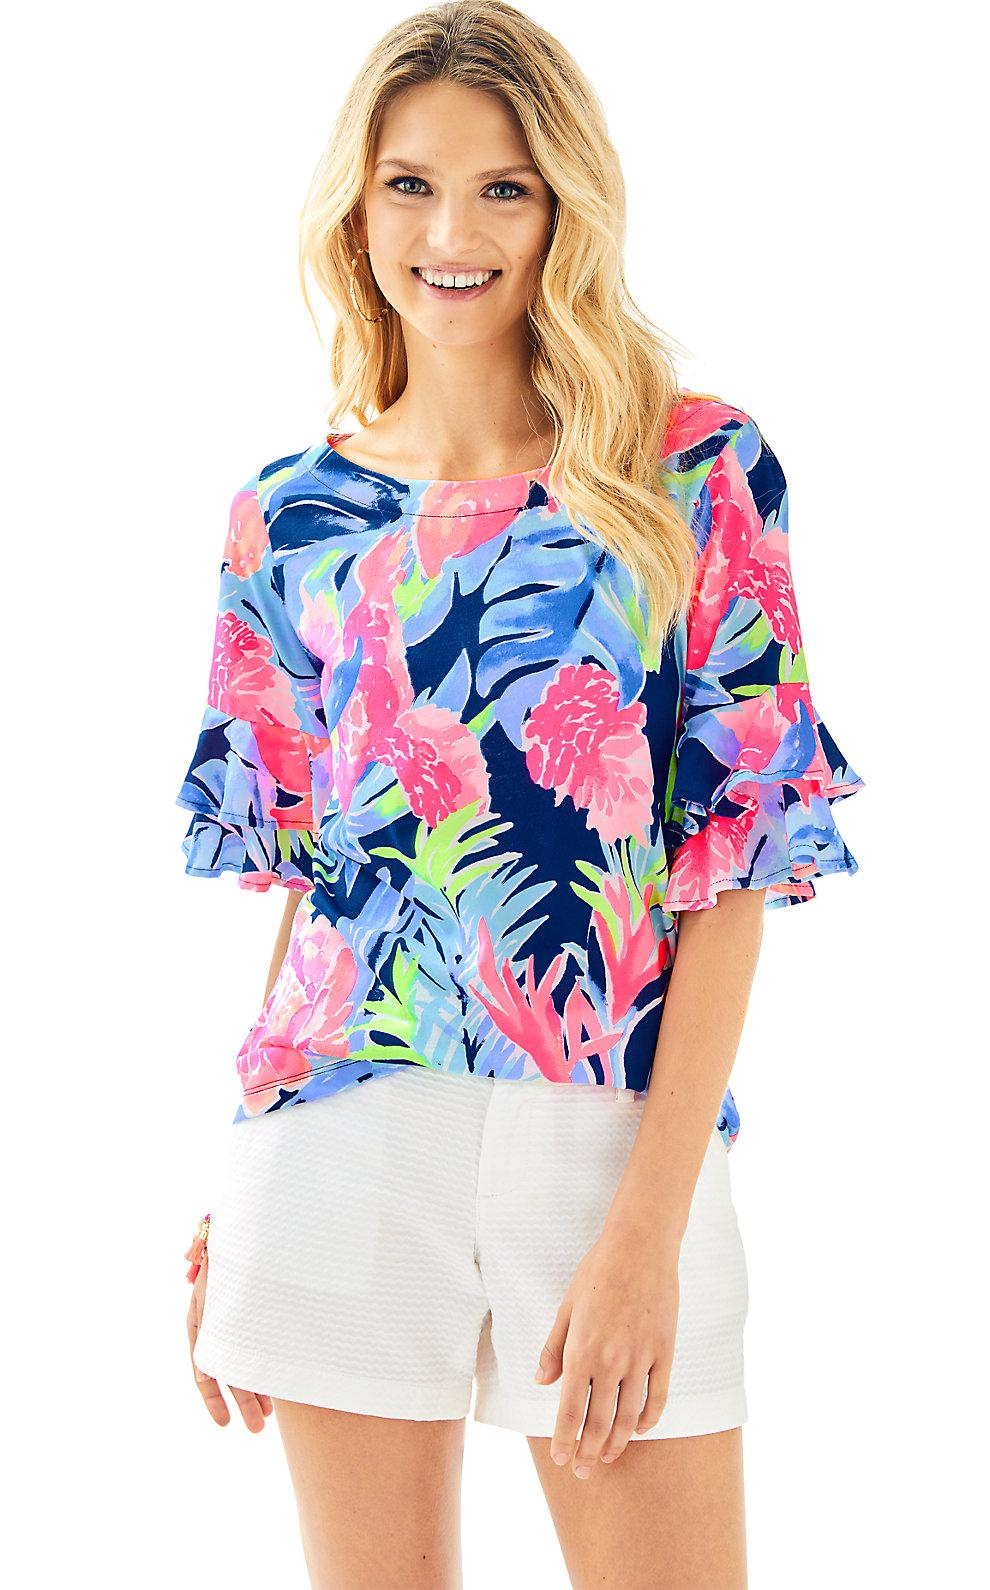 Lilly Pulitzer Lula Top In High Tide Navy Tropicolada